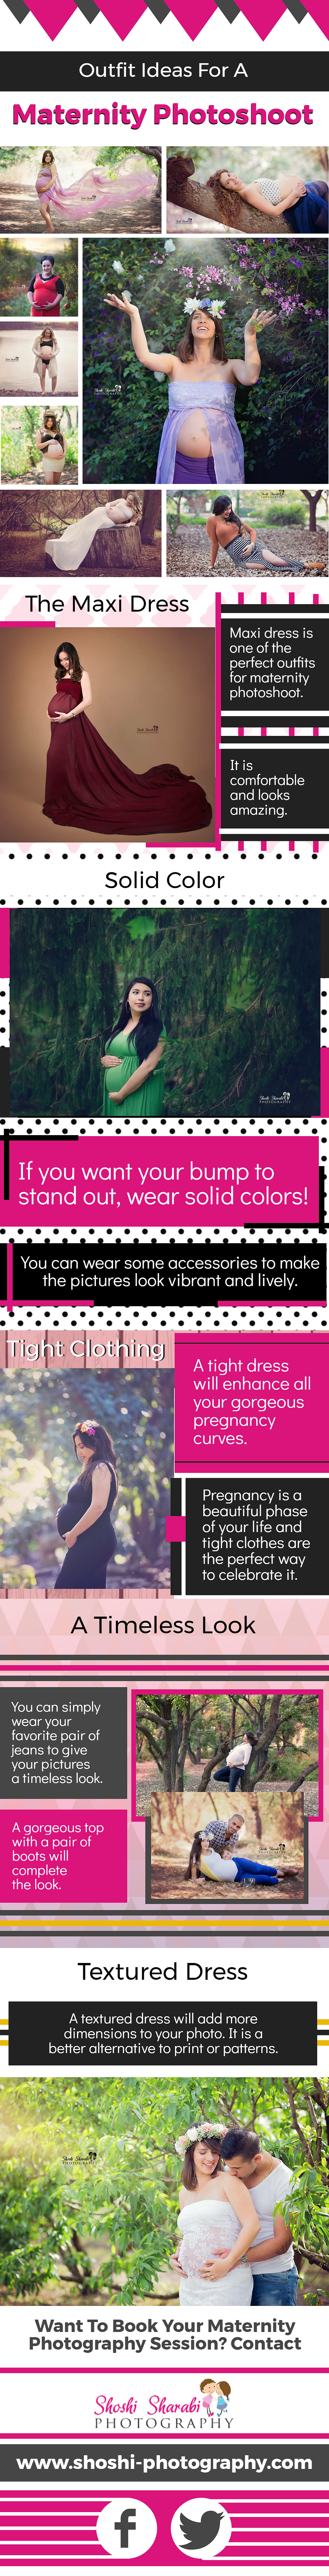 Outfit Ideas For A Maternity Photoshoot